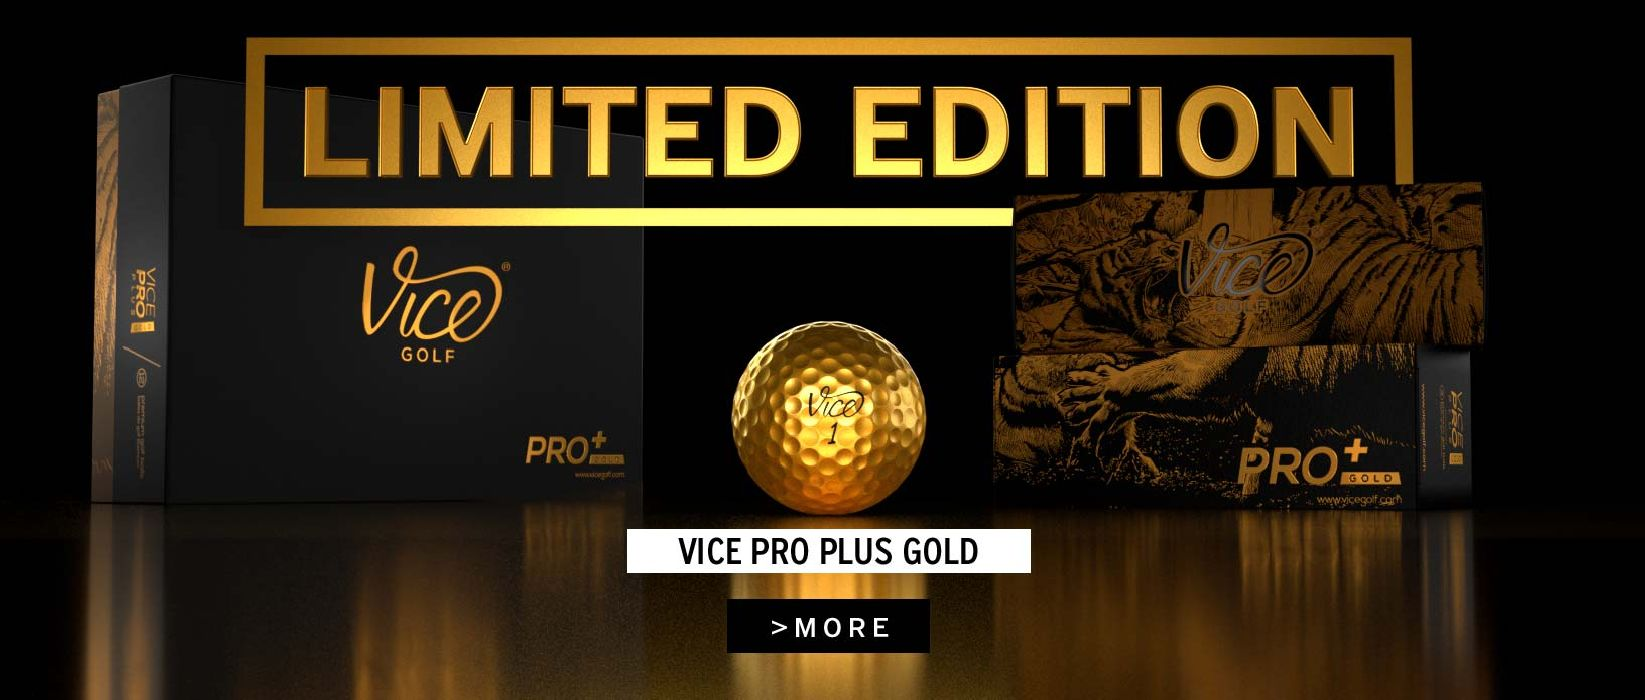 href='vice-golf-pro-plus-gold'